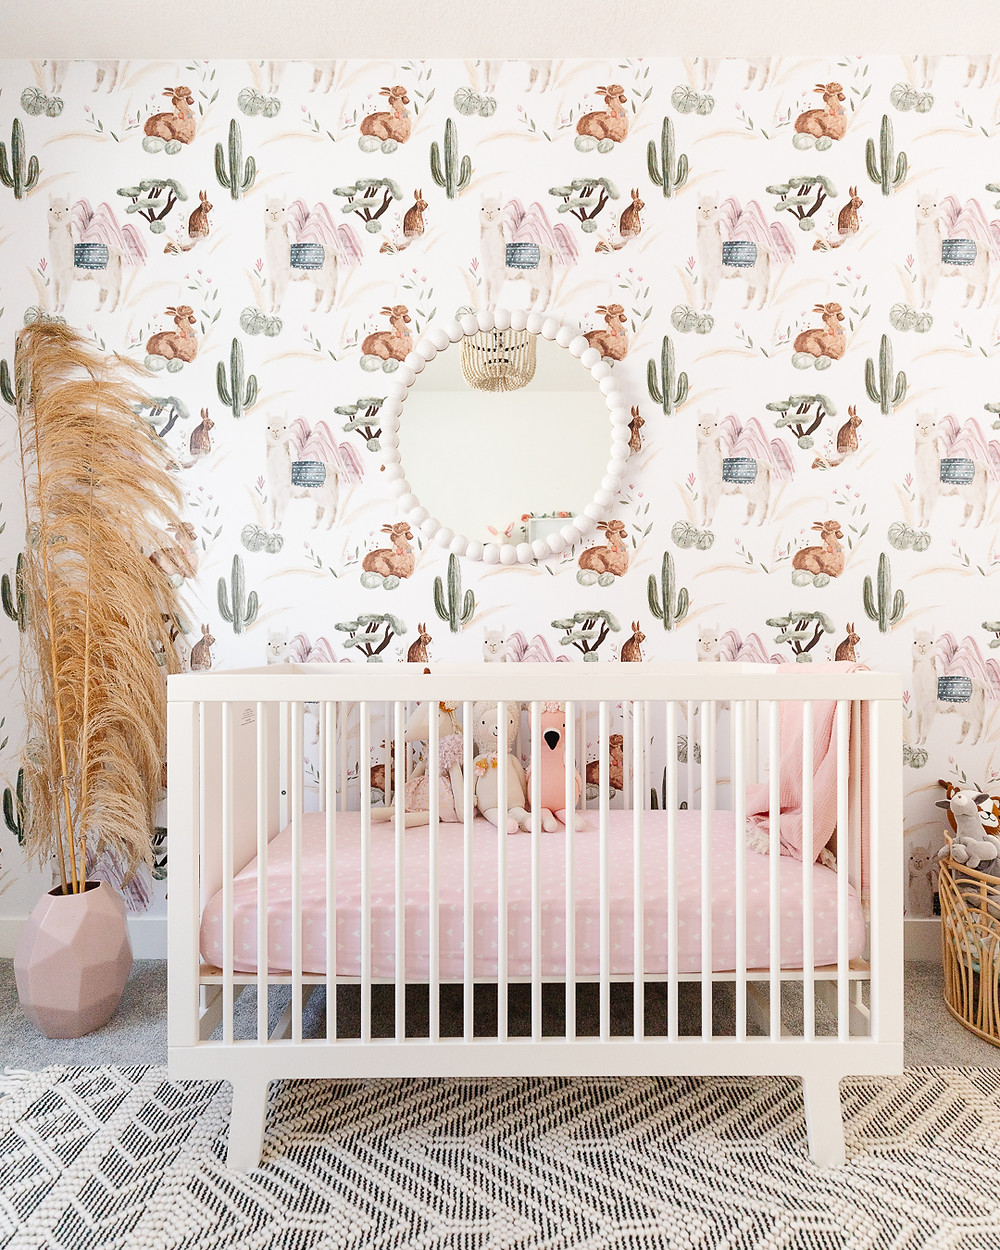 Nursery with white crib and fitted pink sheet white mirror on wall with llama wallpaper detail pampas grass in pink vase on floor wood bead chandelier